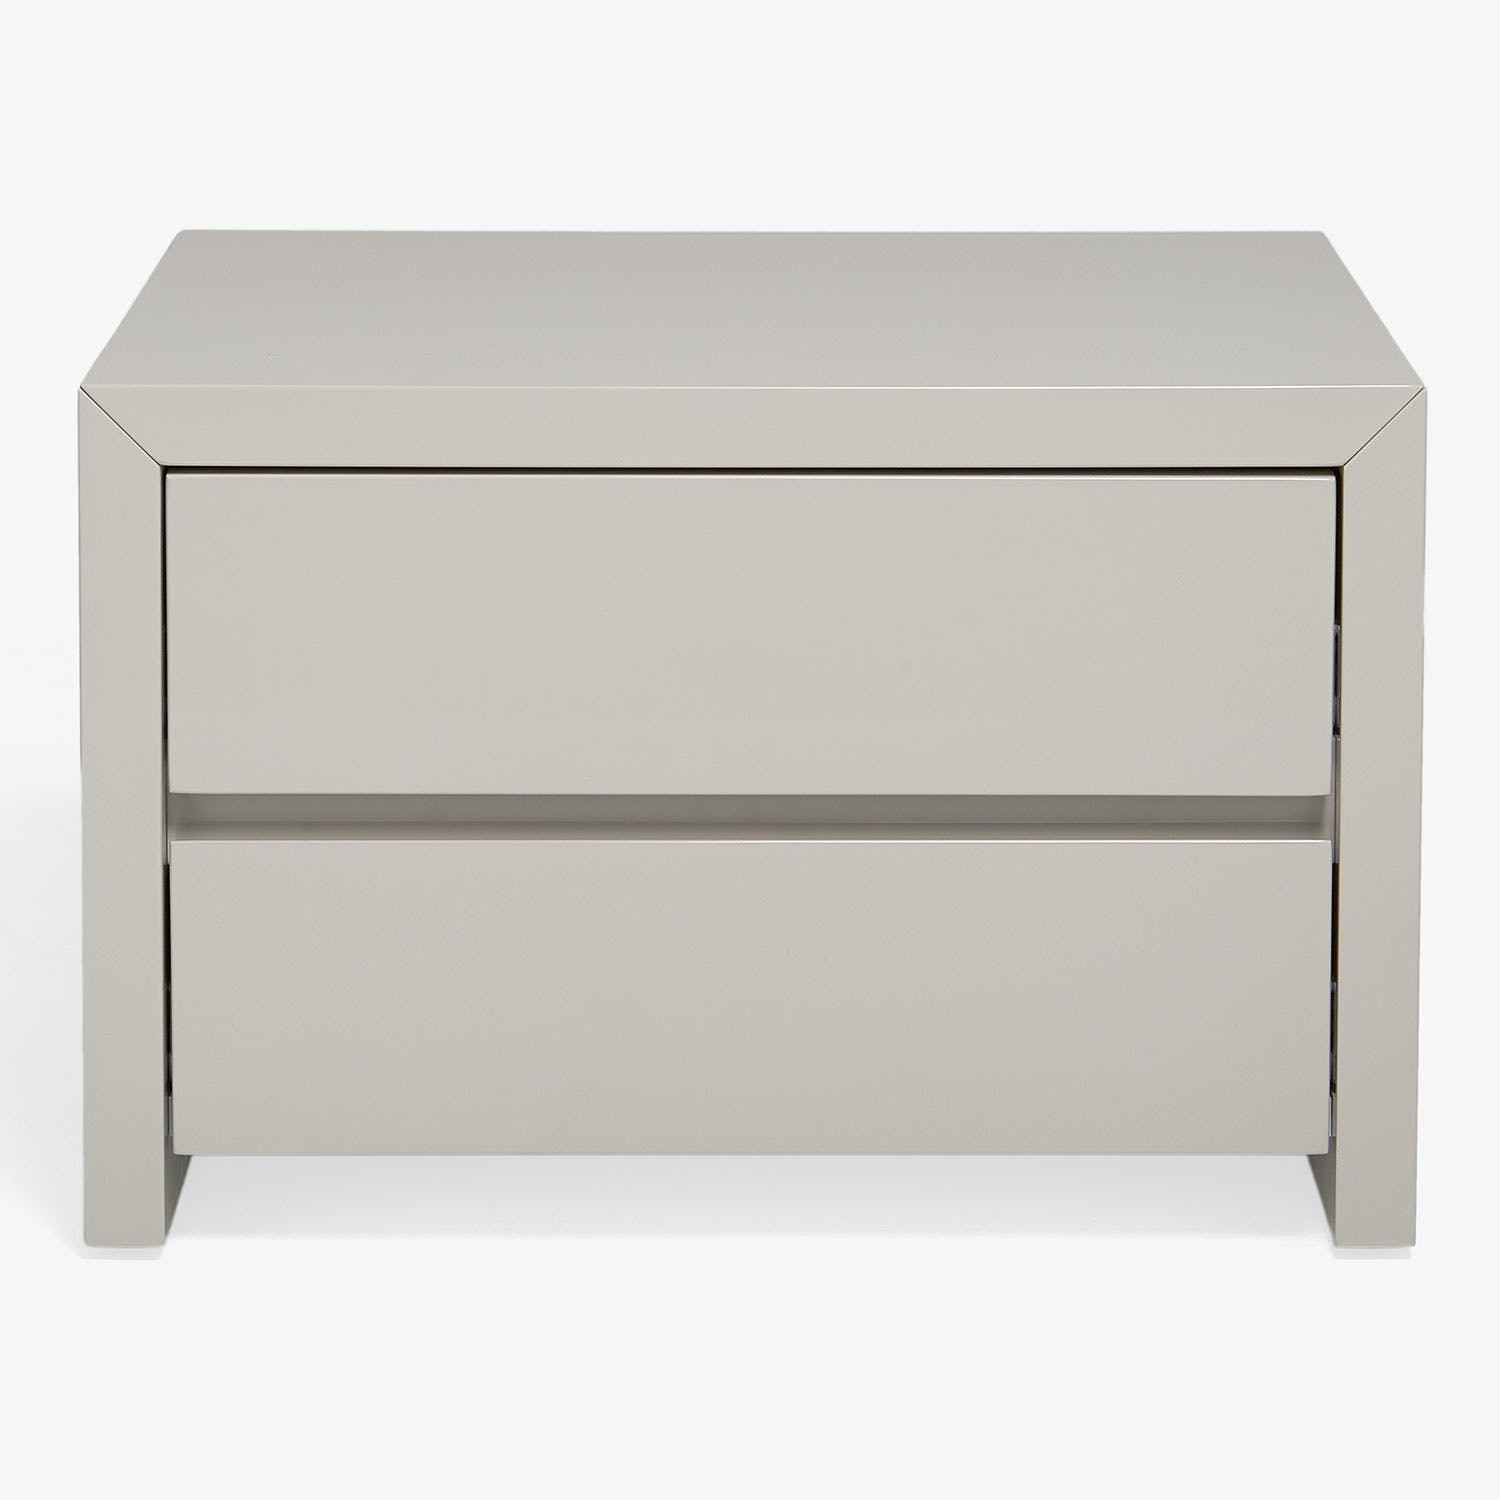 Product Image - Fresco 2 Drawer Lacquer Nightstand